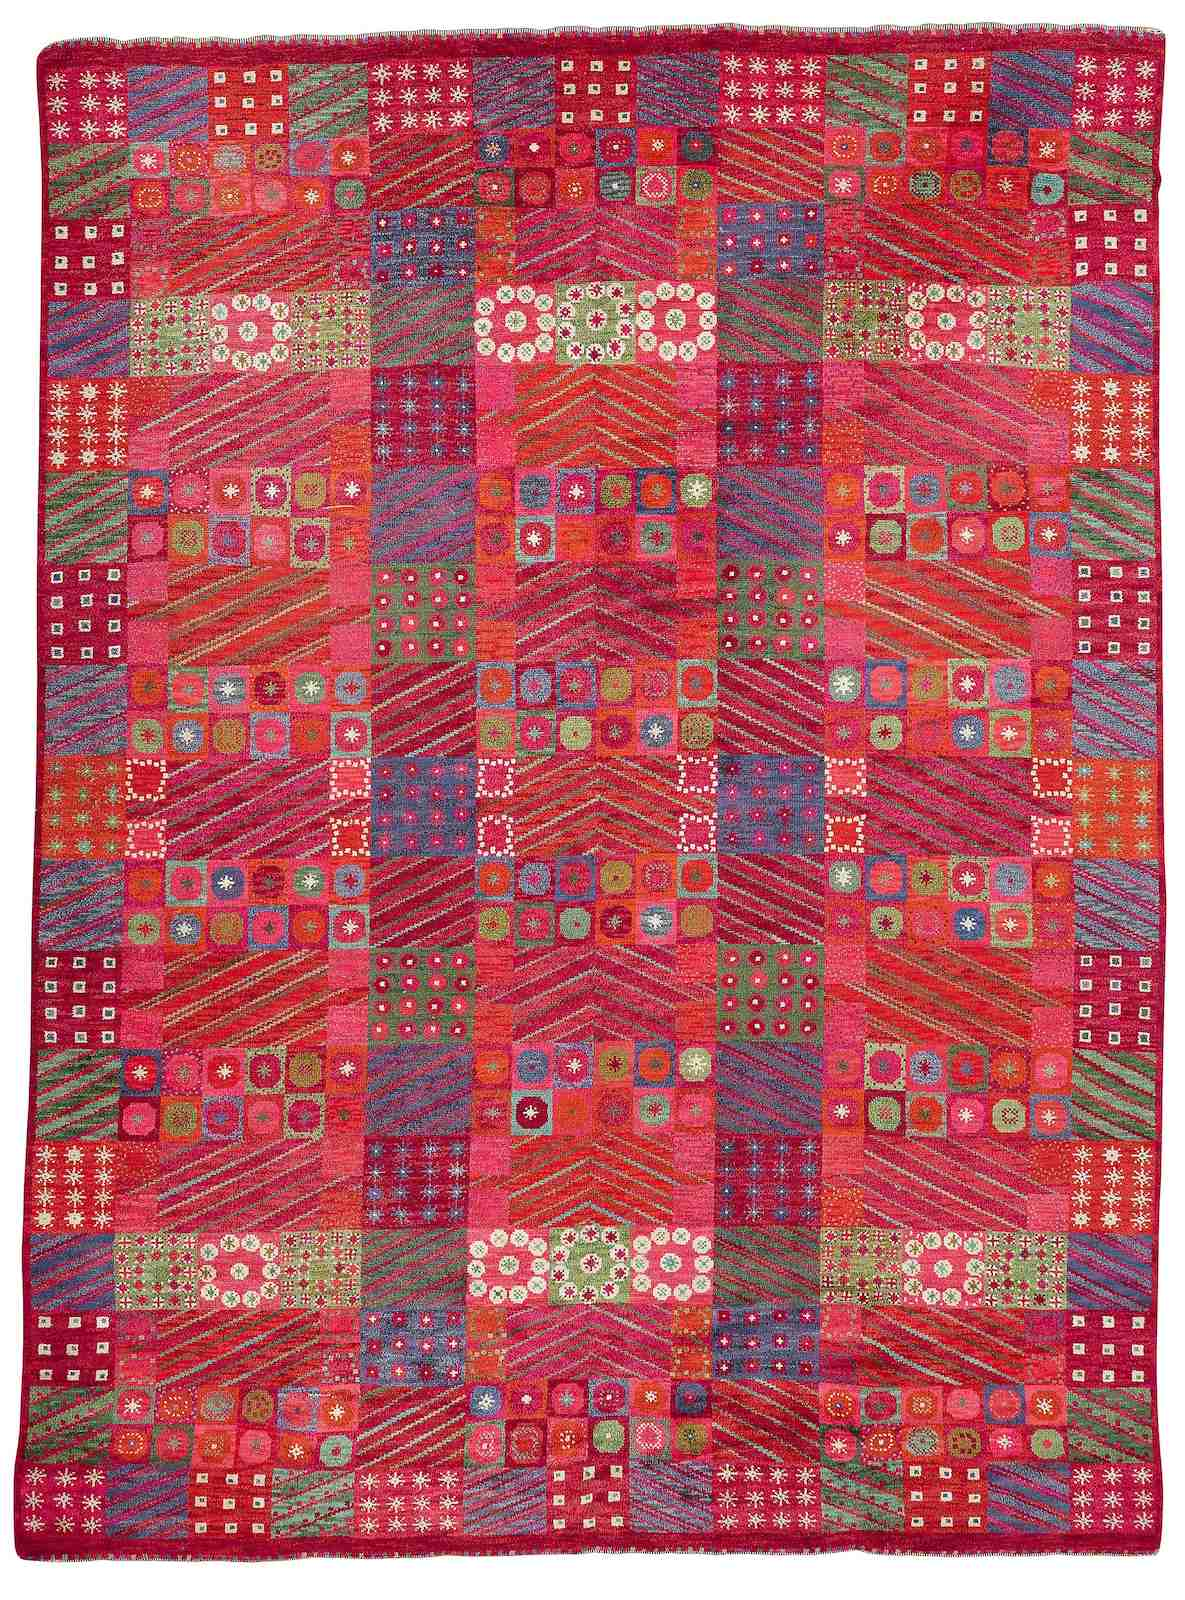 Marianne Richter, A carpet,